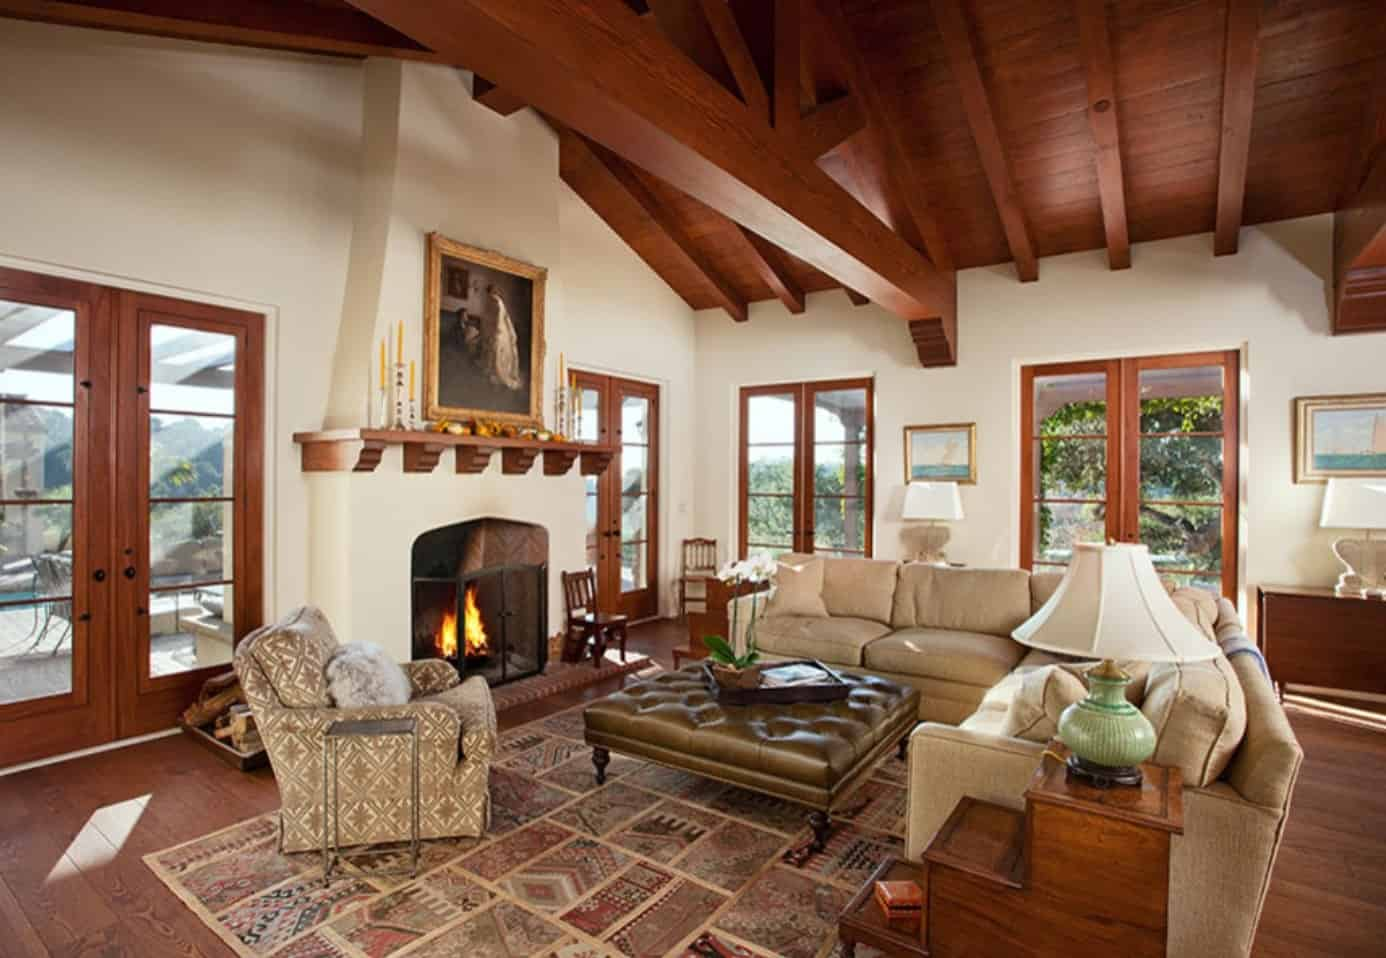 Spanish living room surrounded with glazed doors that complements the wood beam ceiling. It features a fireplace fixed below a lovely painting.